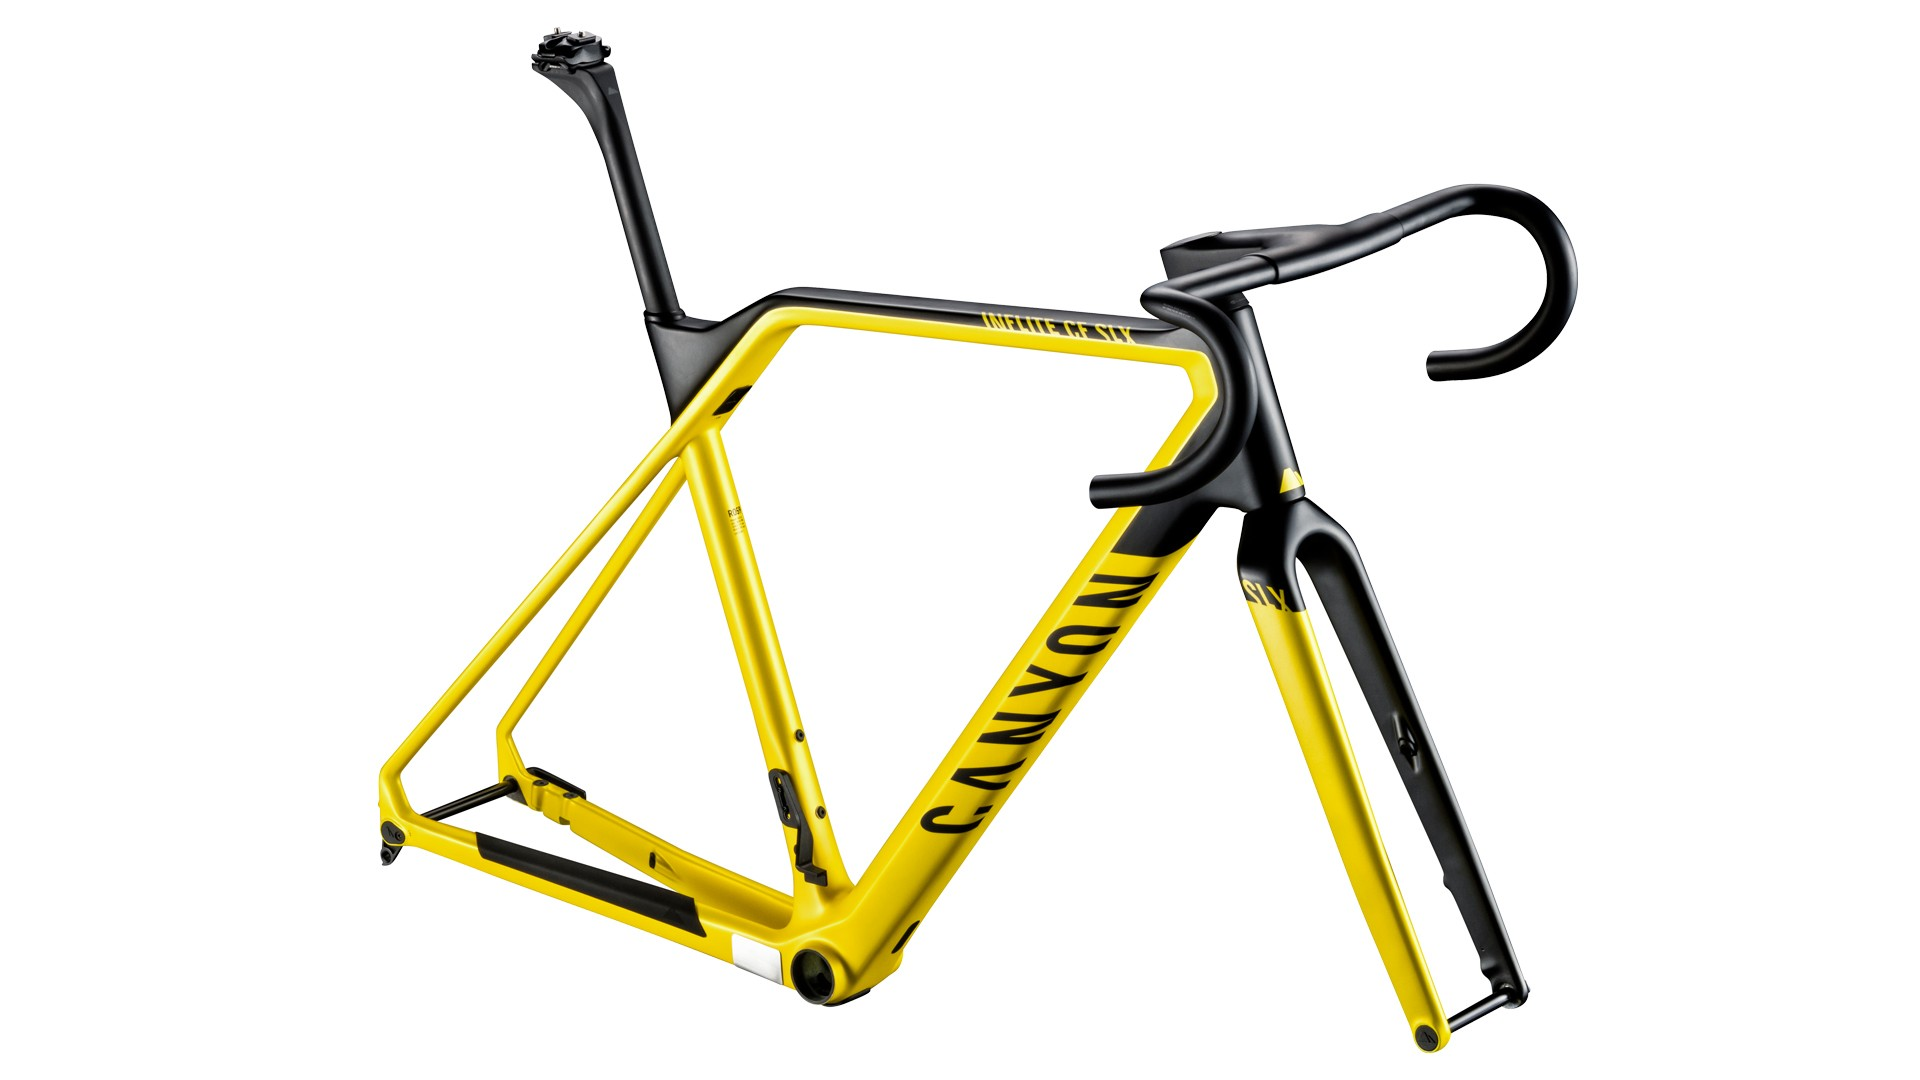 The MUDIIITA Canyon team will be riding the carbon Canyon Inflite